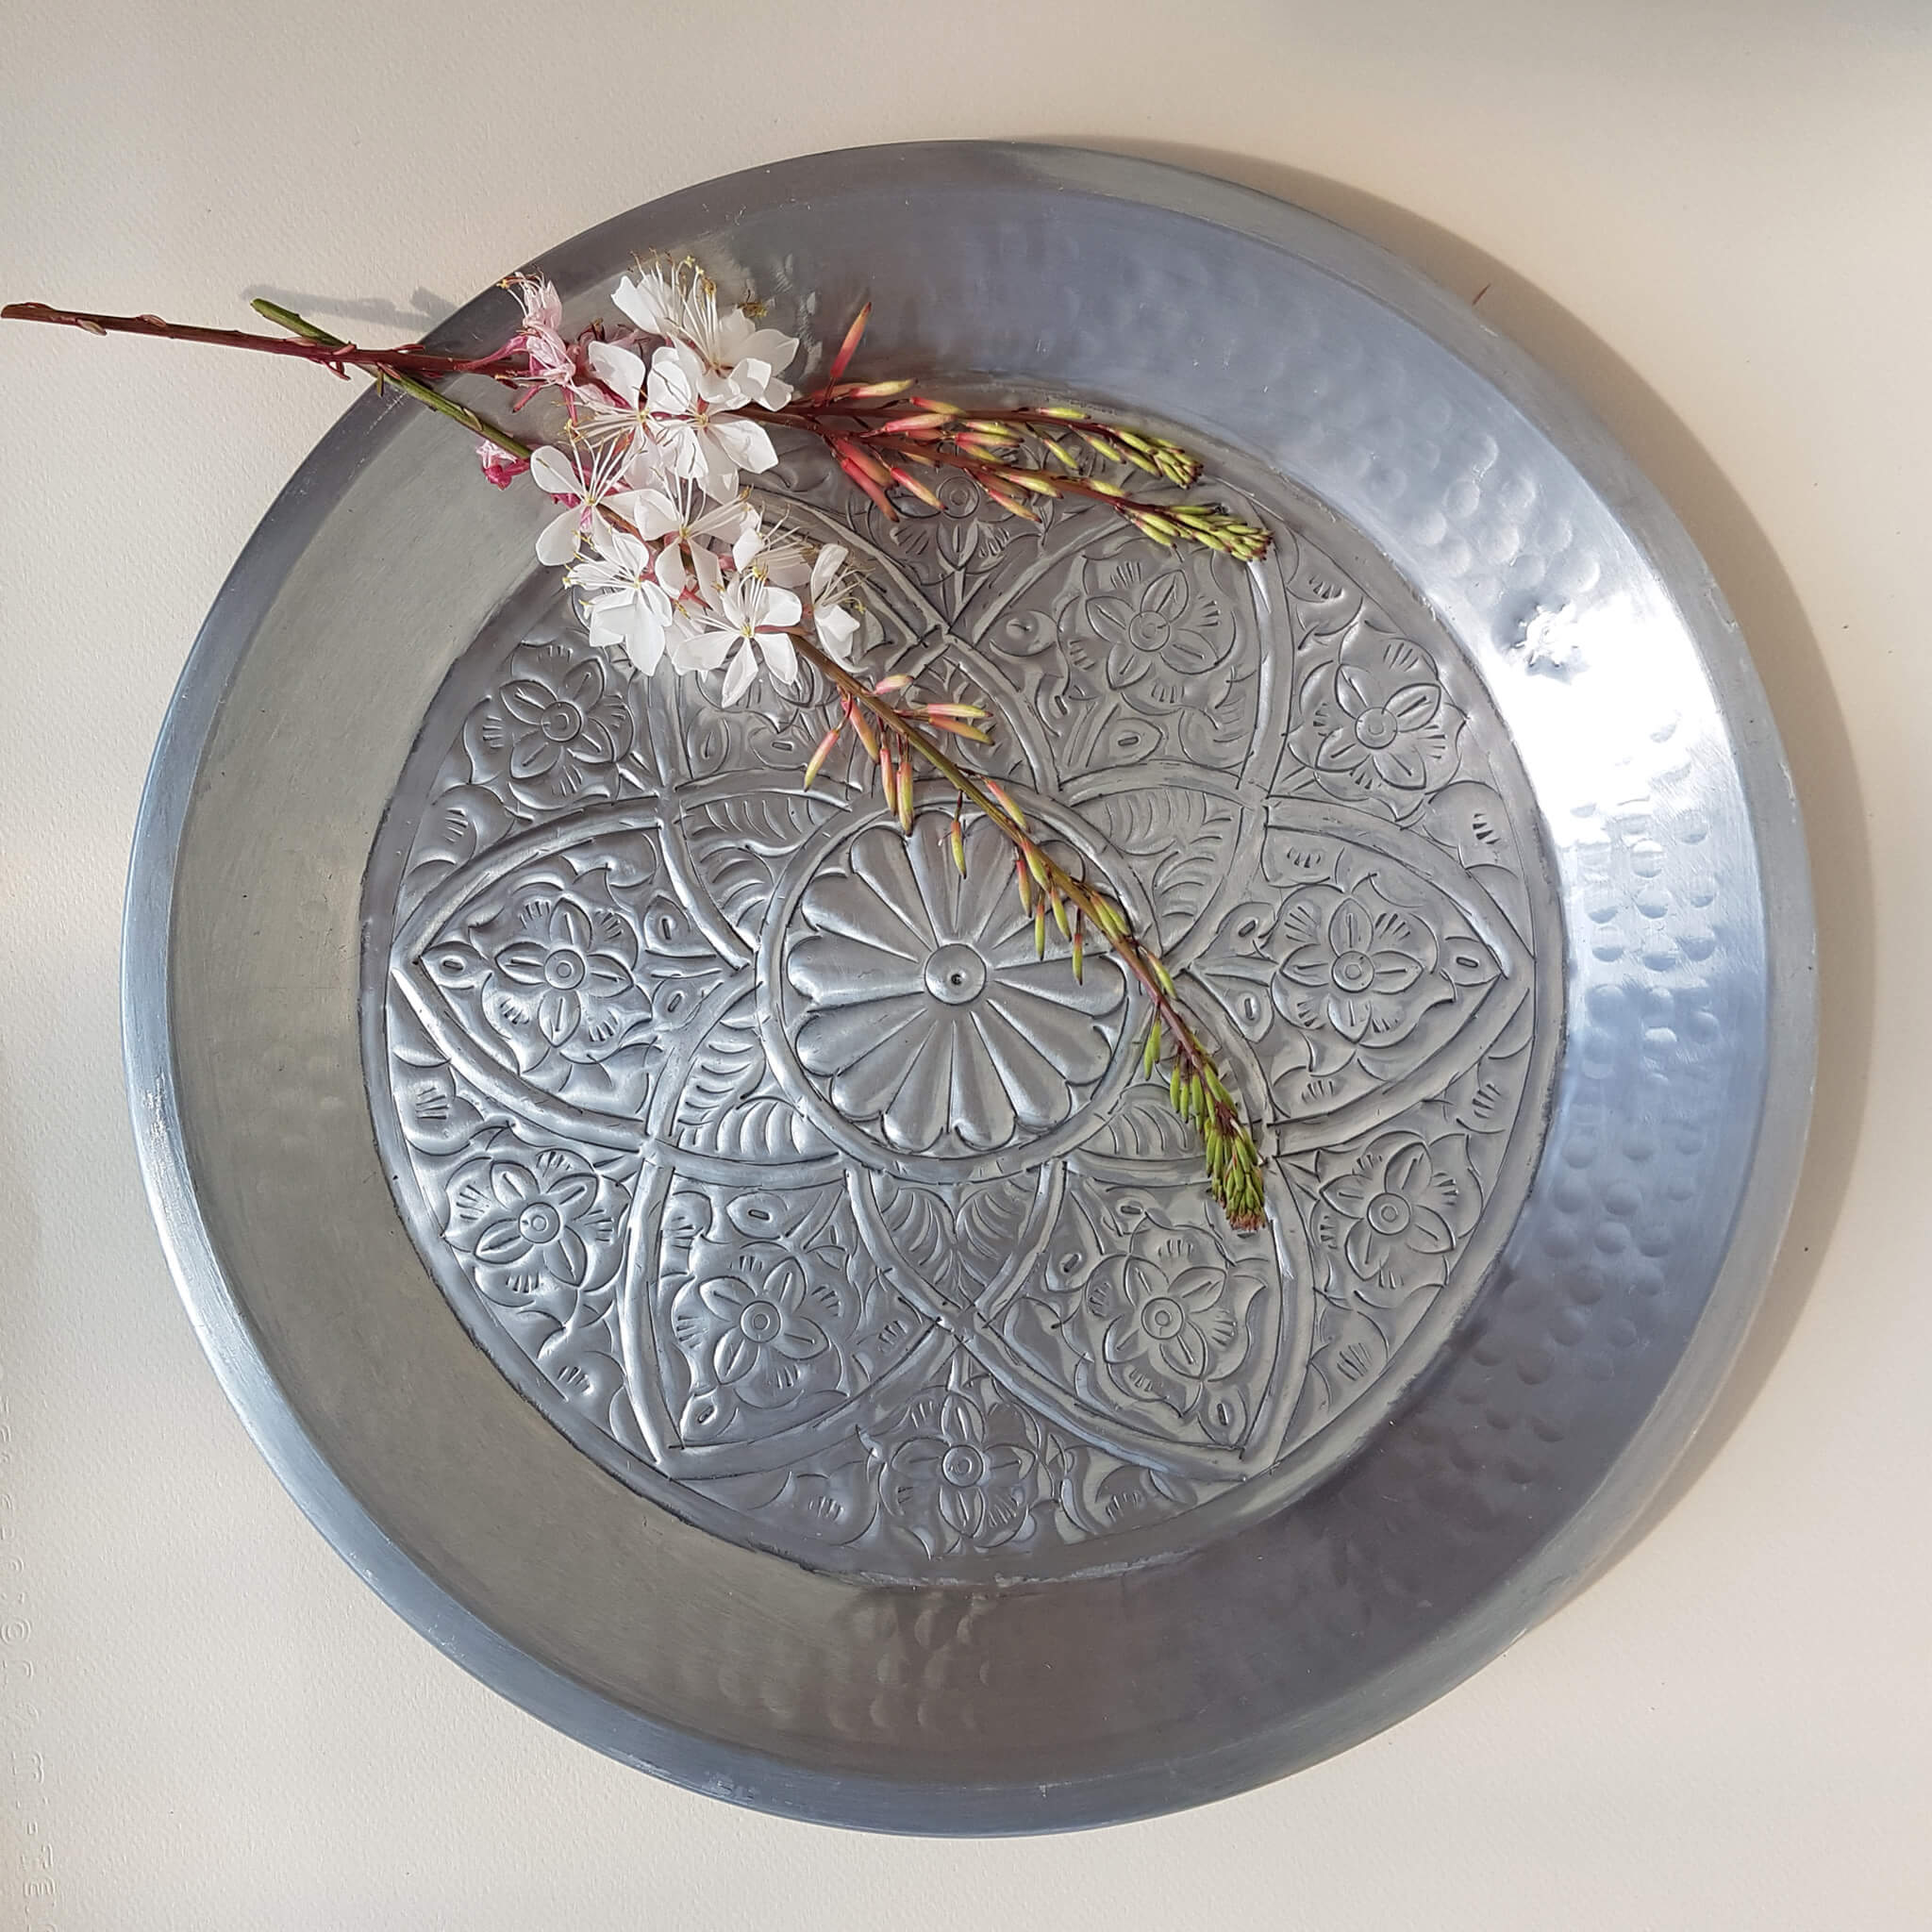 Van Verre Indian Flower Tray hand beaten metal silver colour - Unik by Nature